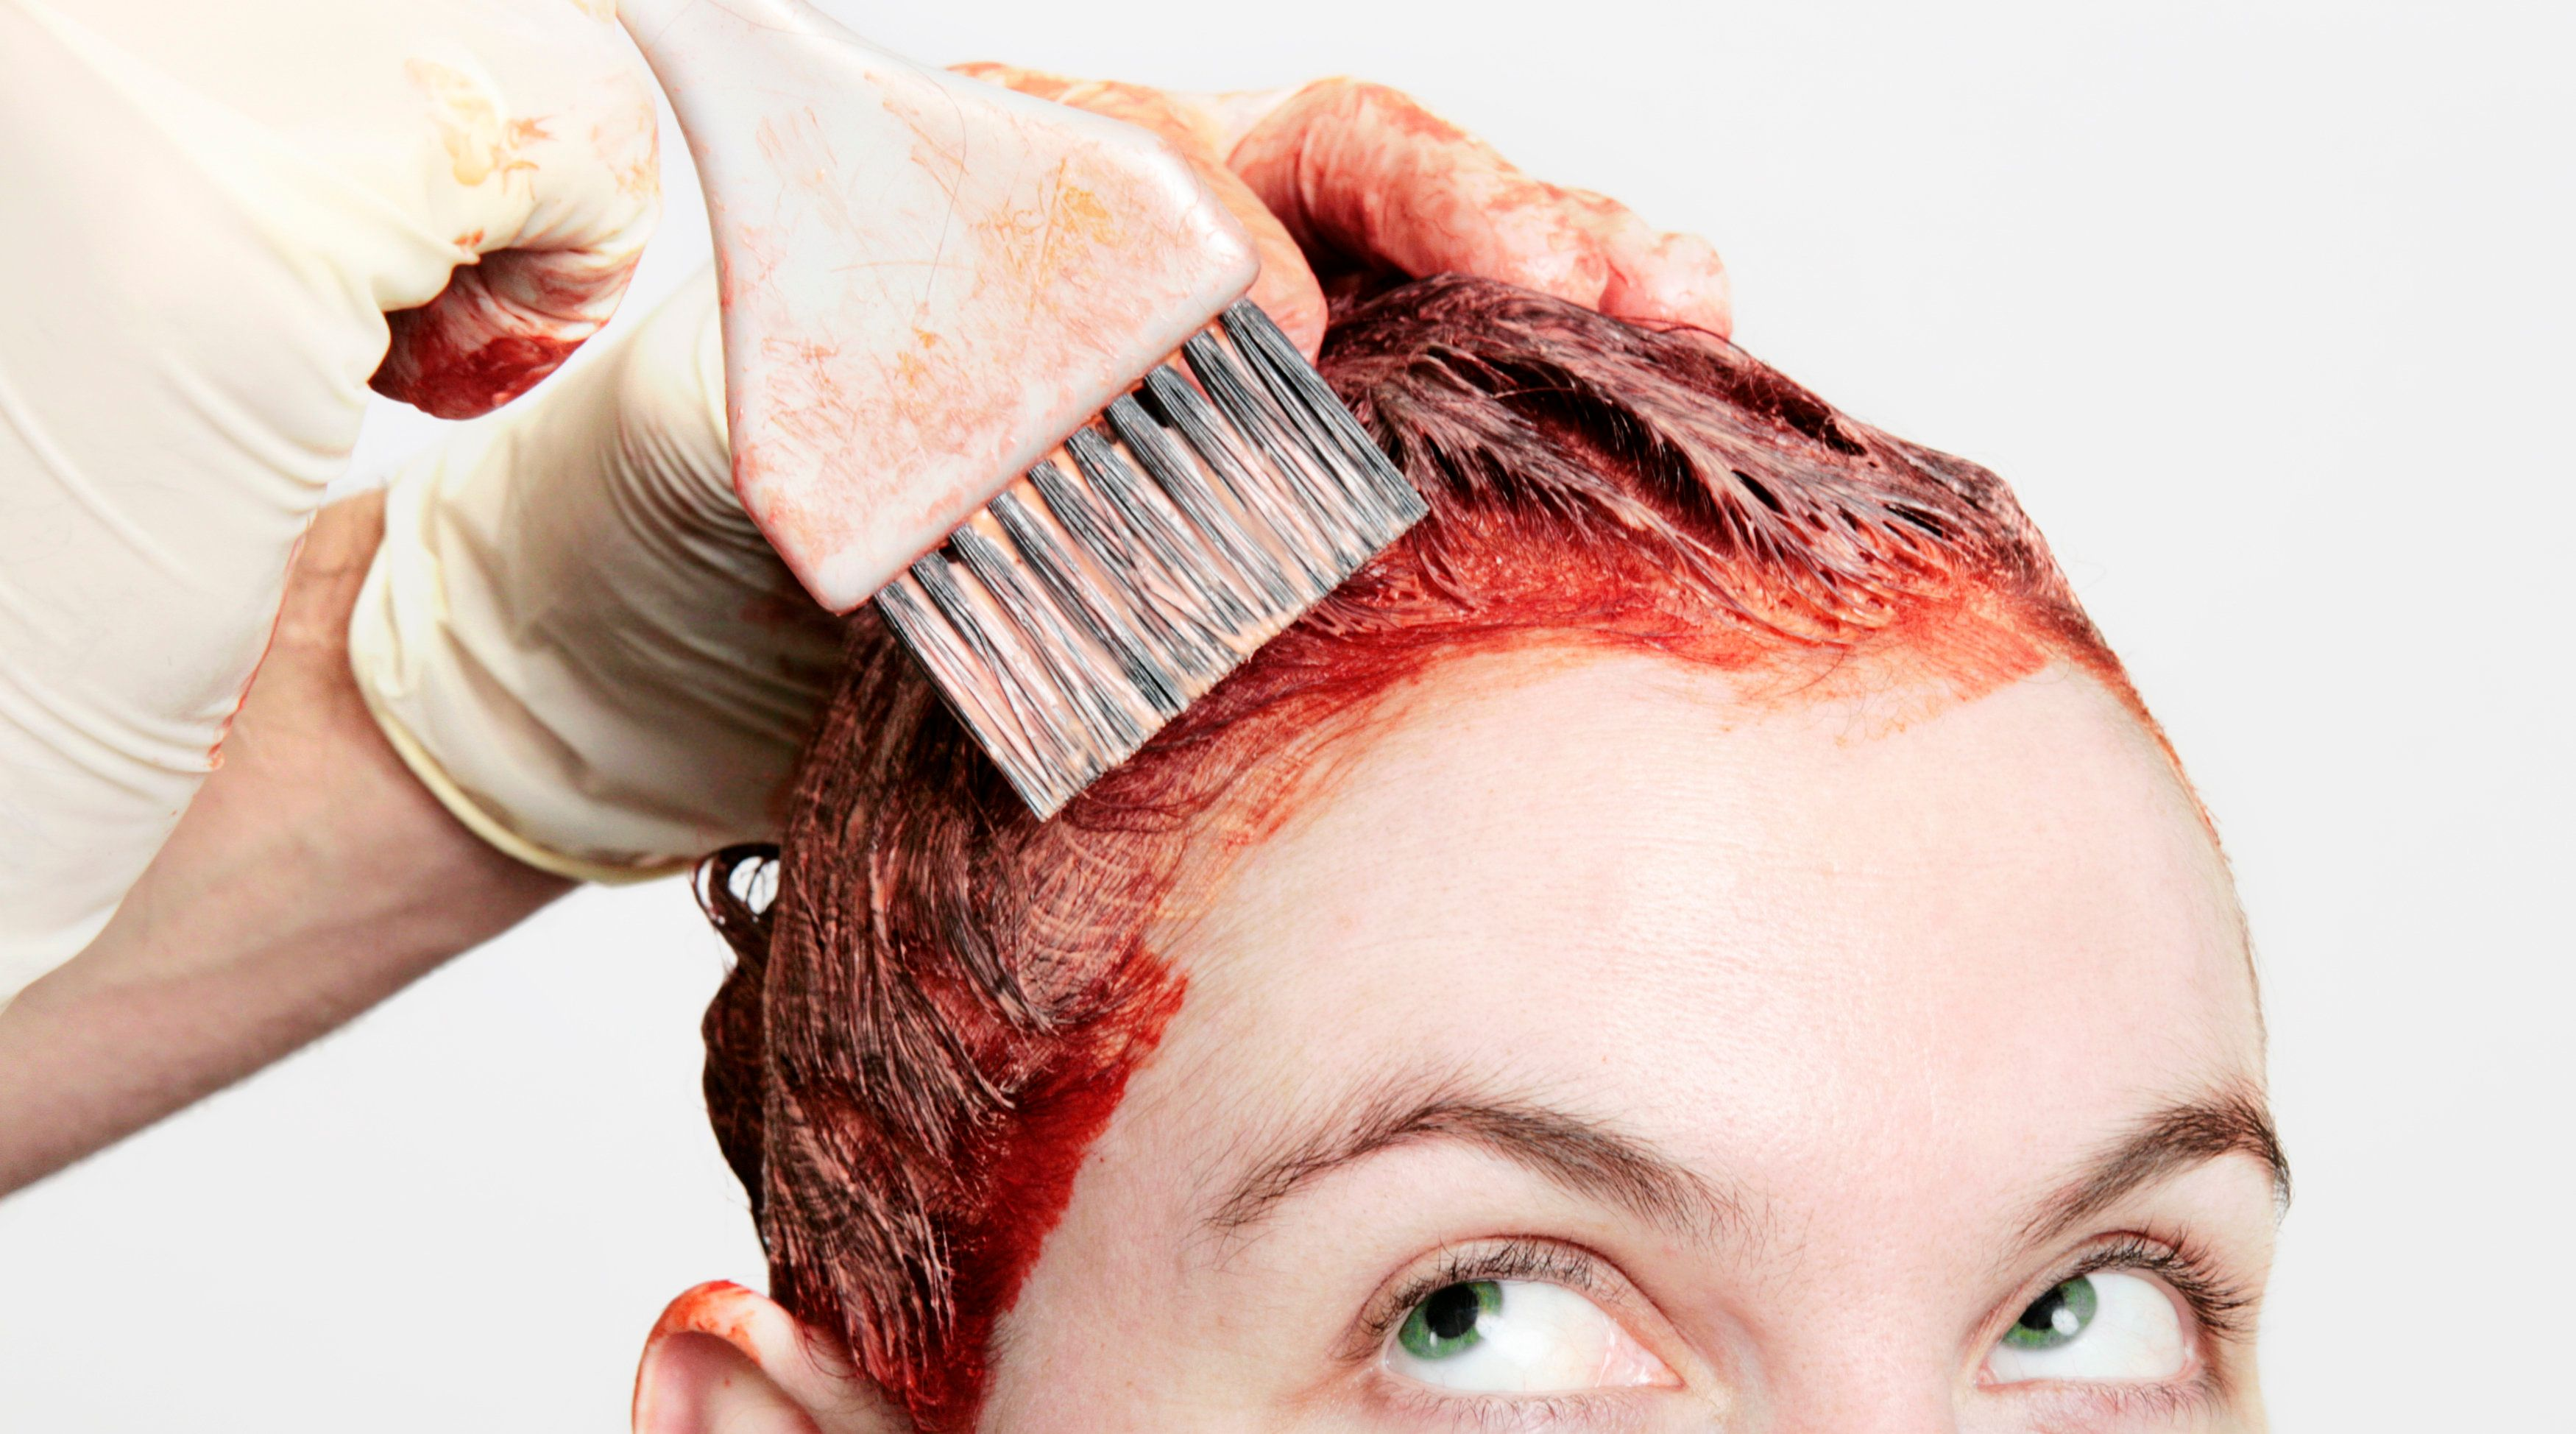 Hair dye generally isn't in contact with the skin on your headfor very